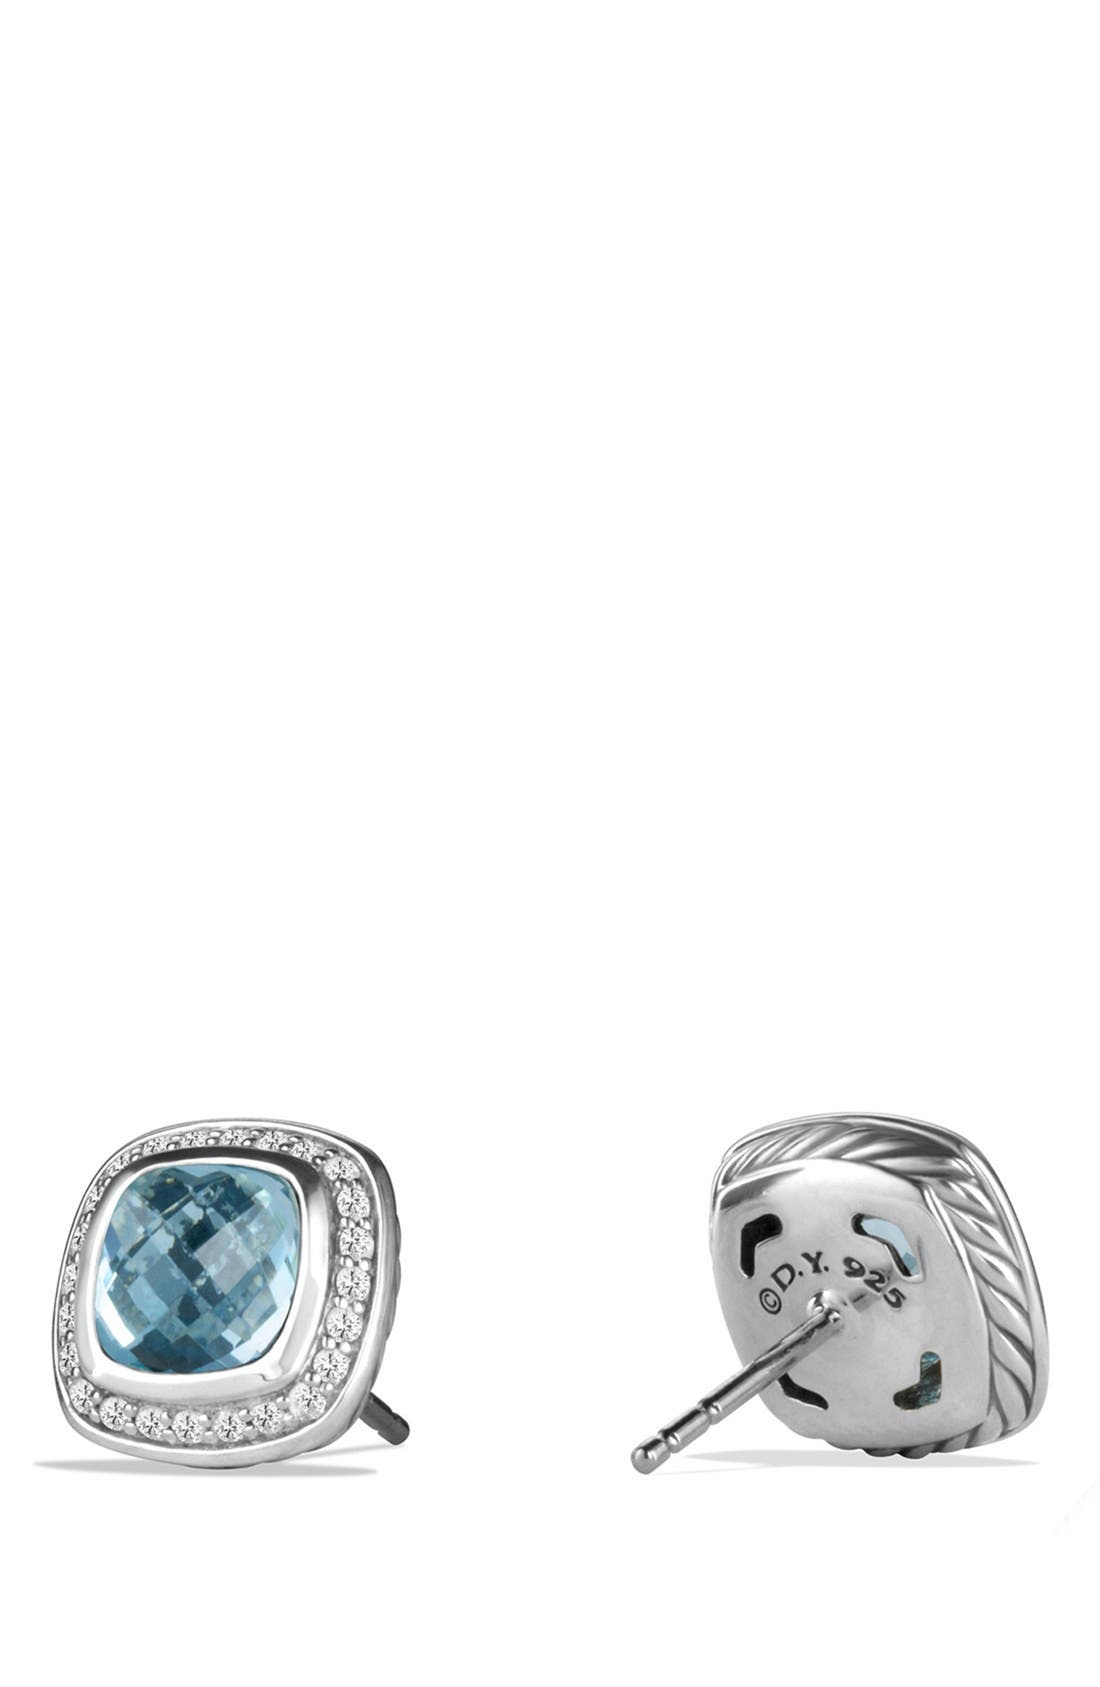 'Albion' Earrings with Semiprecious Stone and Diamonds,                             Alternate thumbnail 2, color,                             Blue Topaz